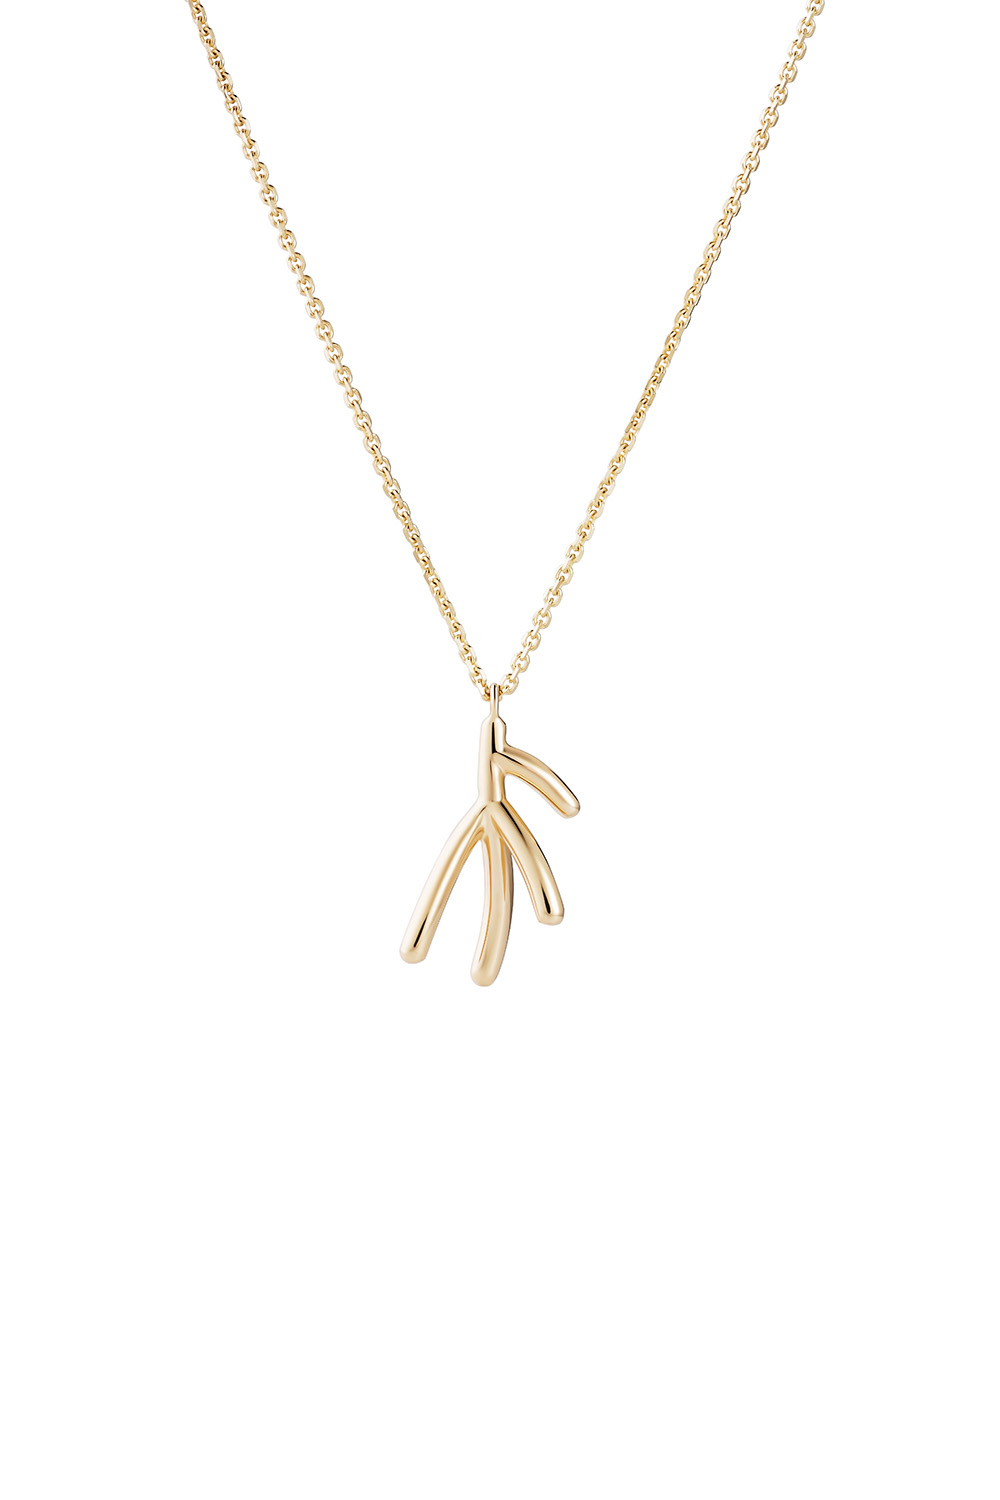 Koral Gold Micro Pendant Necklace